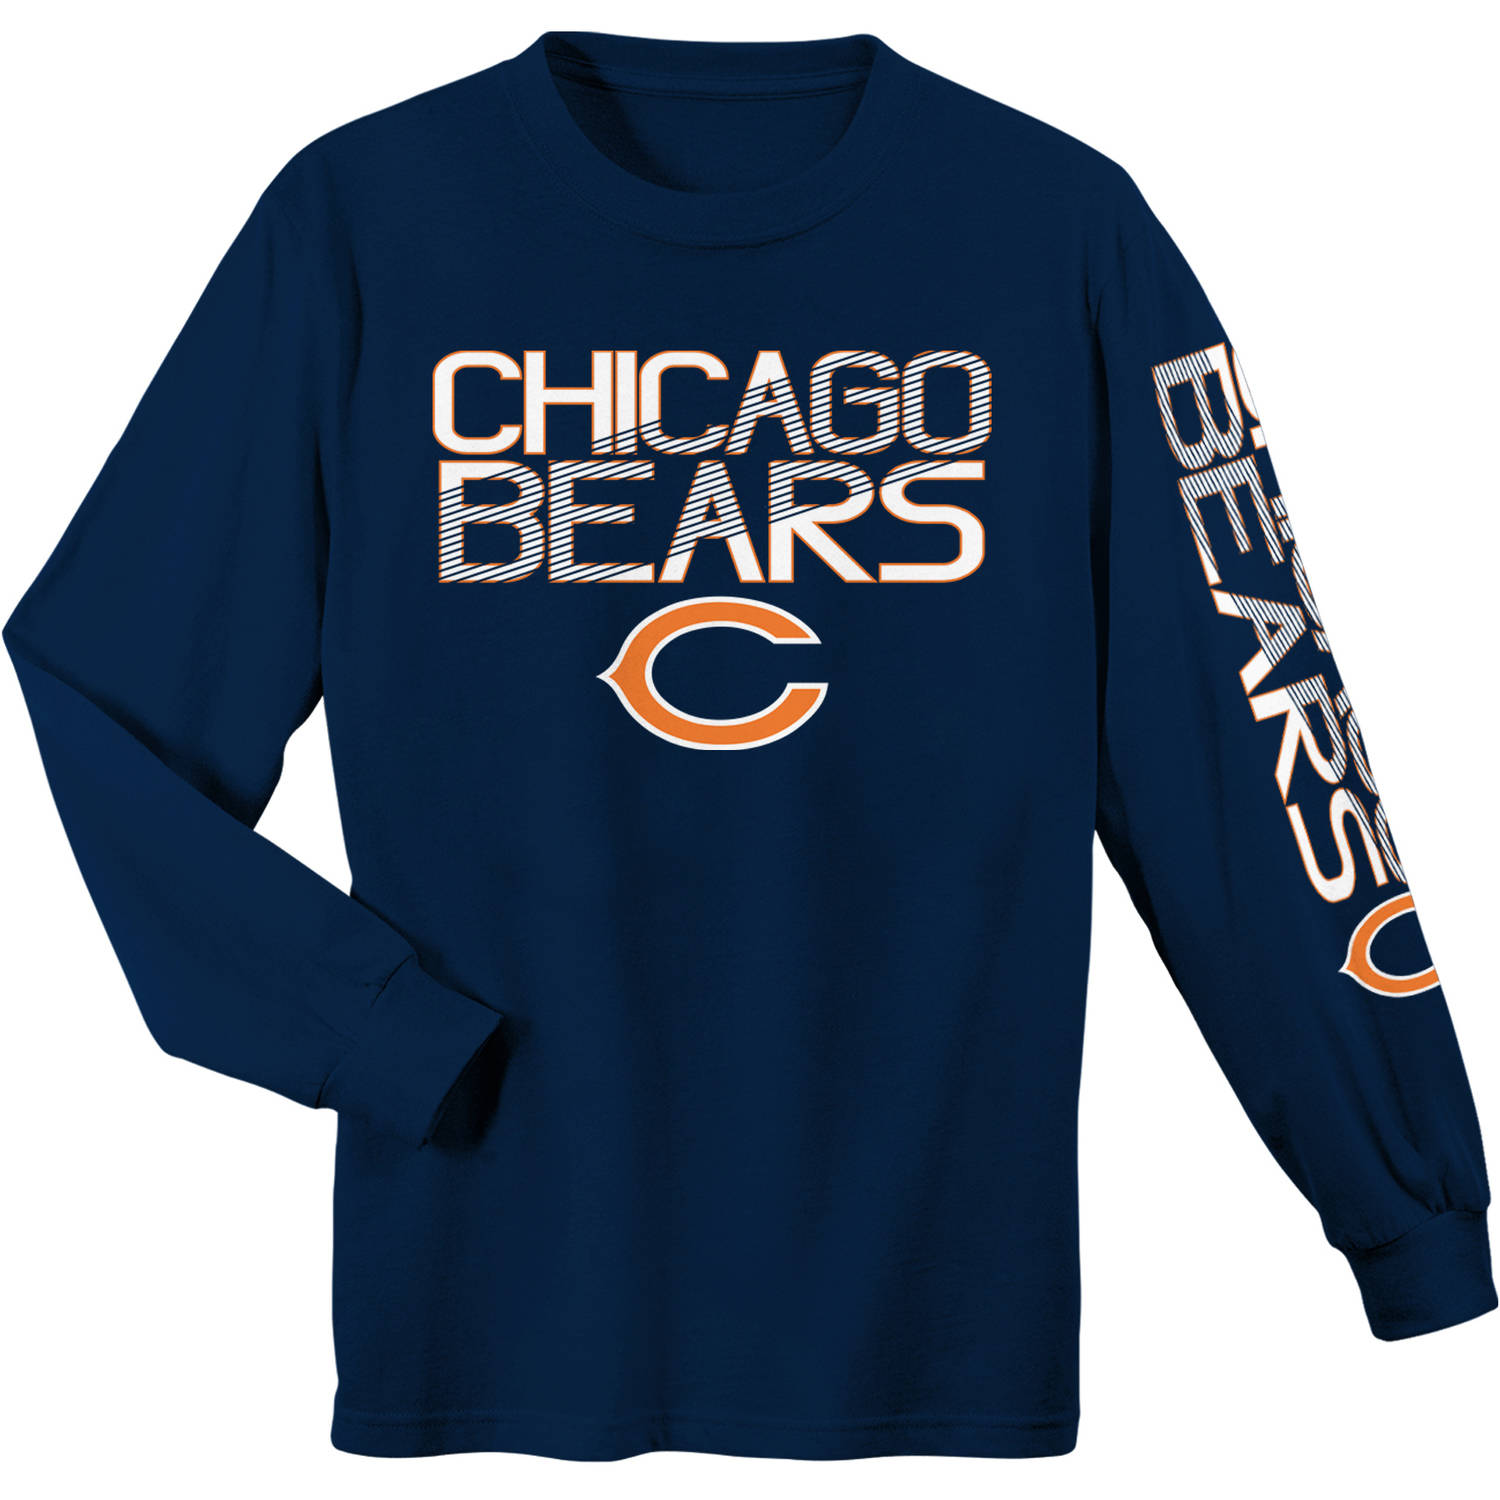 NFL Chicago Bears Youth Long Sleeve Cotton Tee